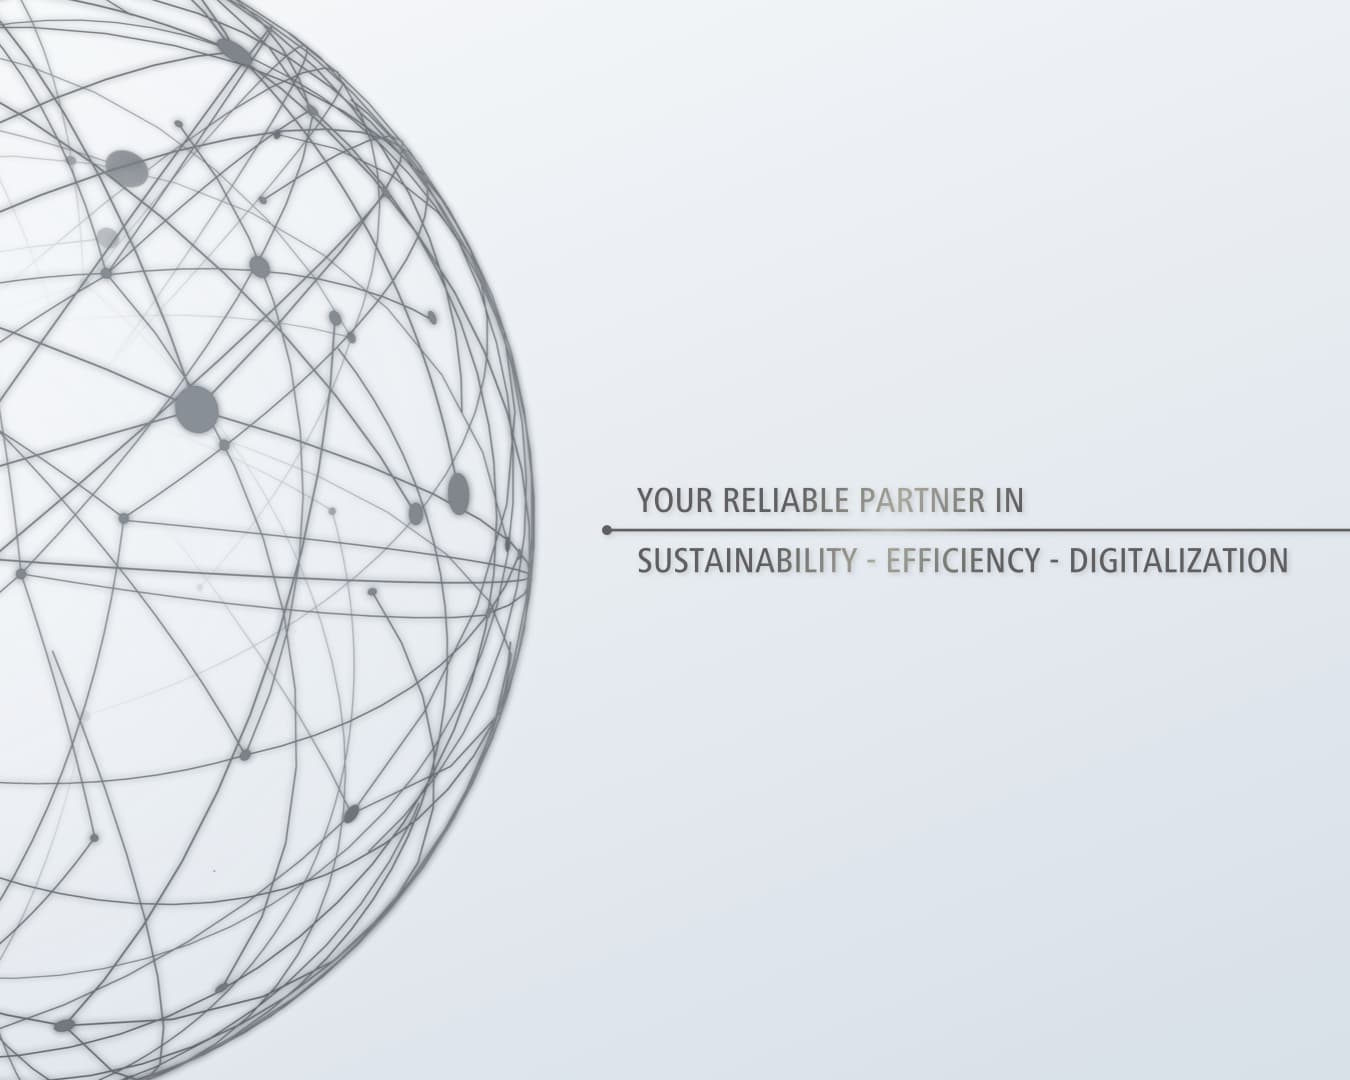 Grey background with ball showing cross-linked lines and saying